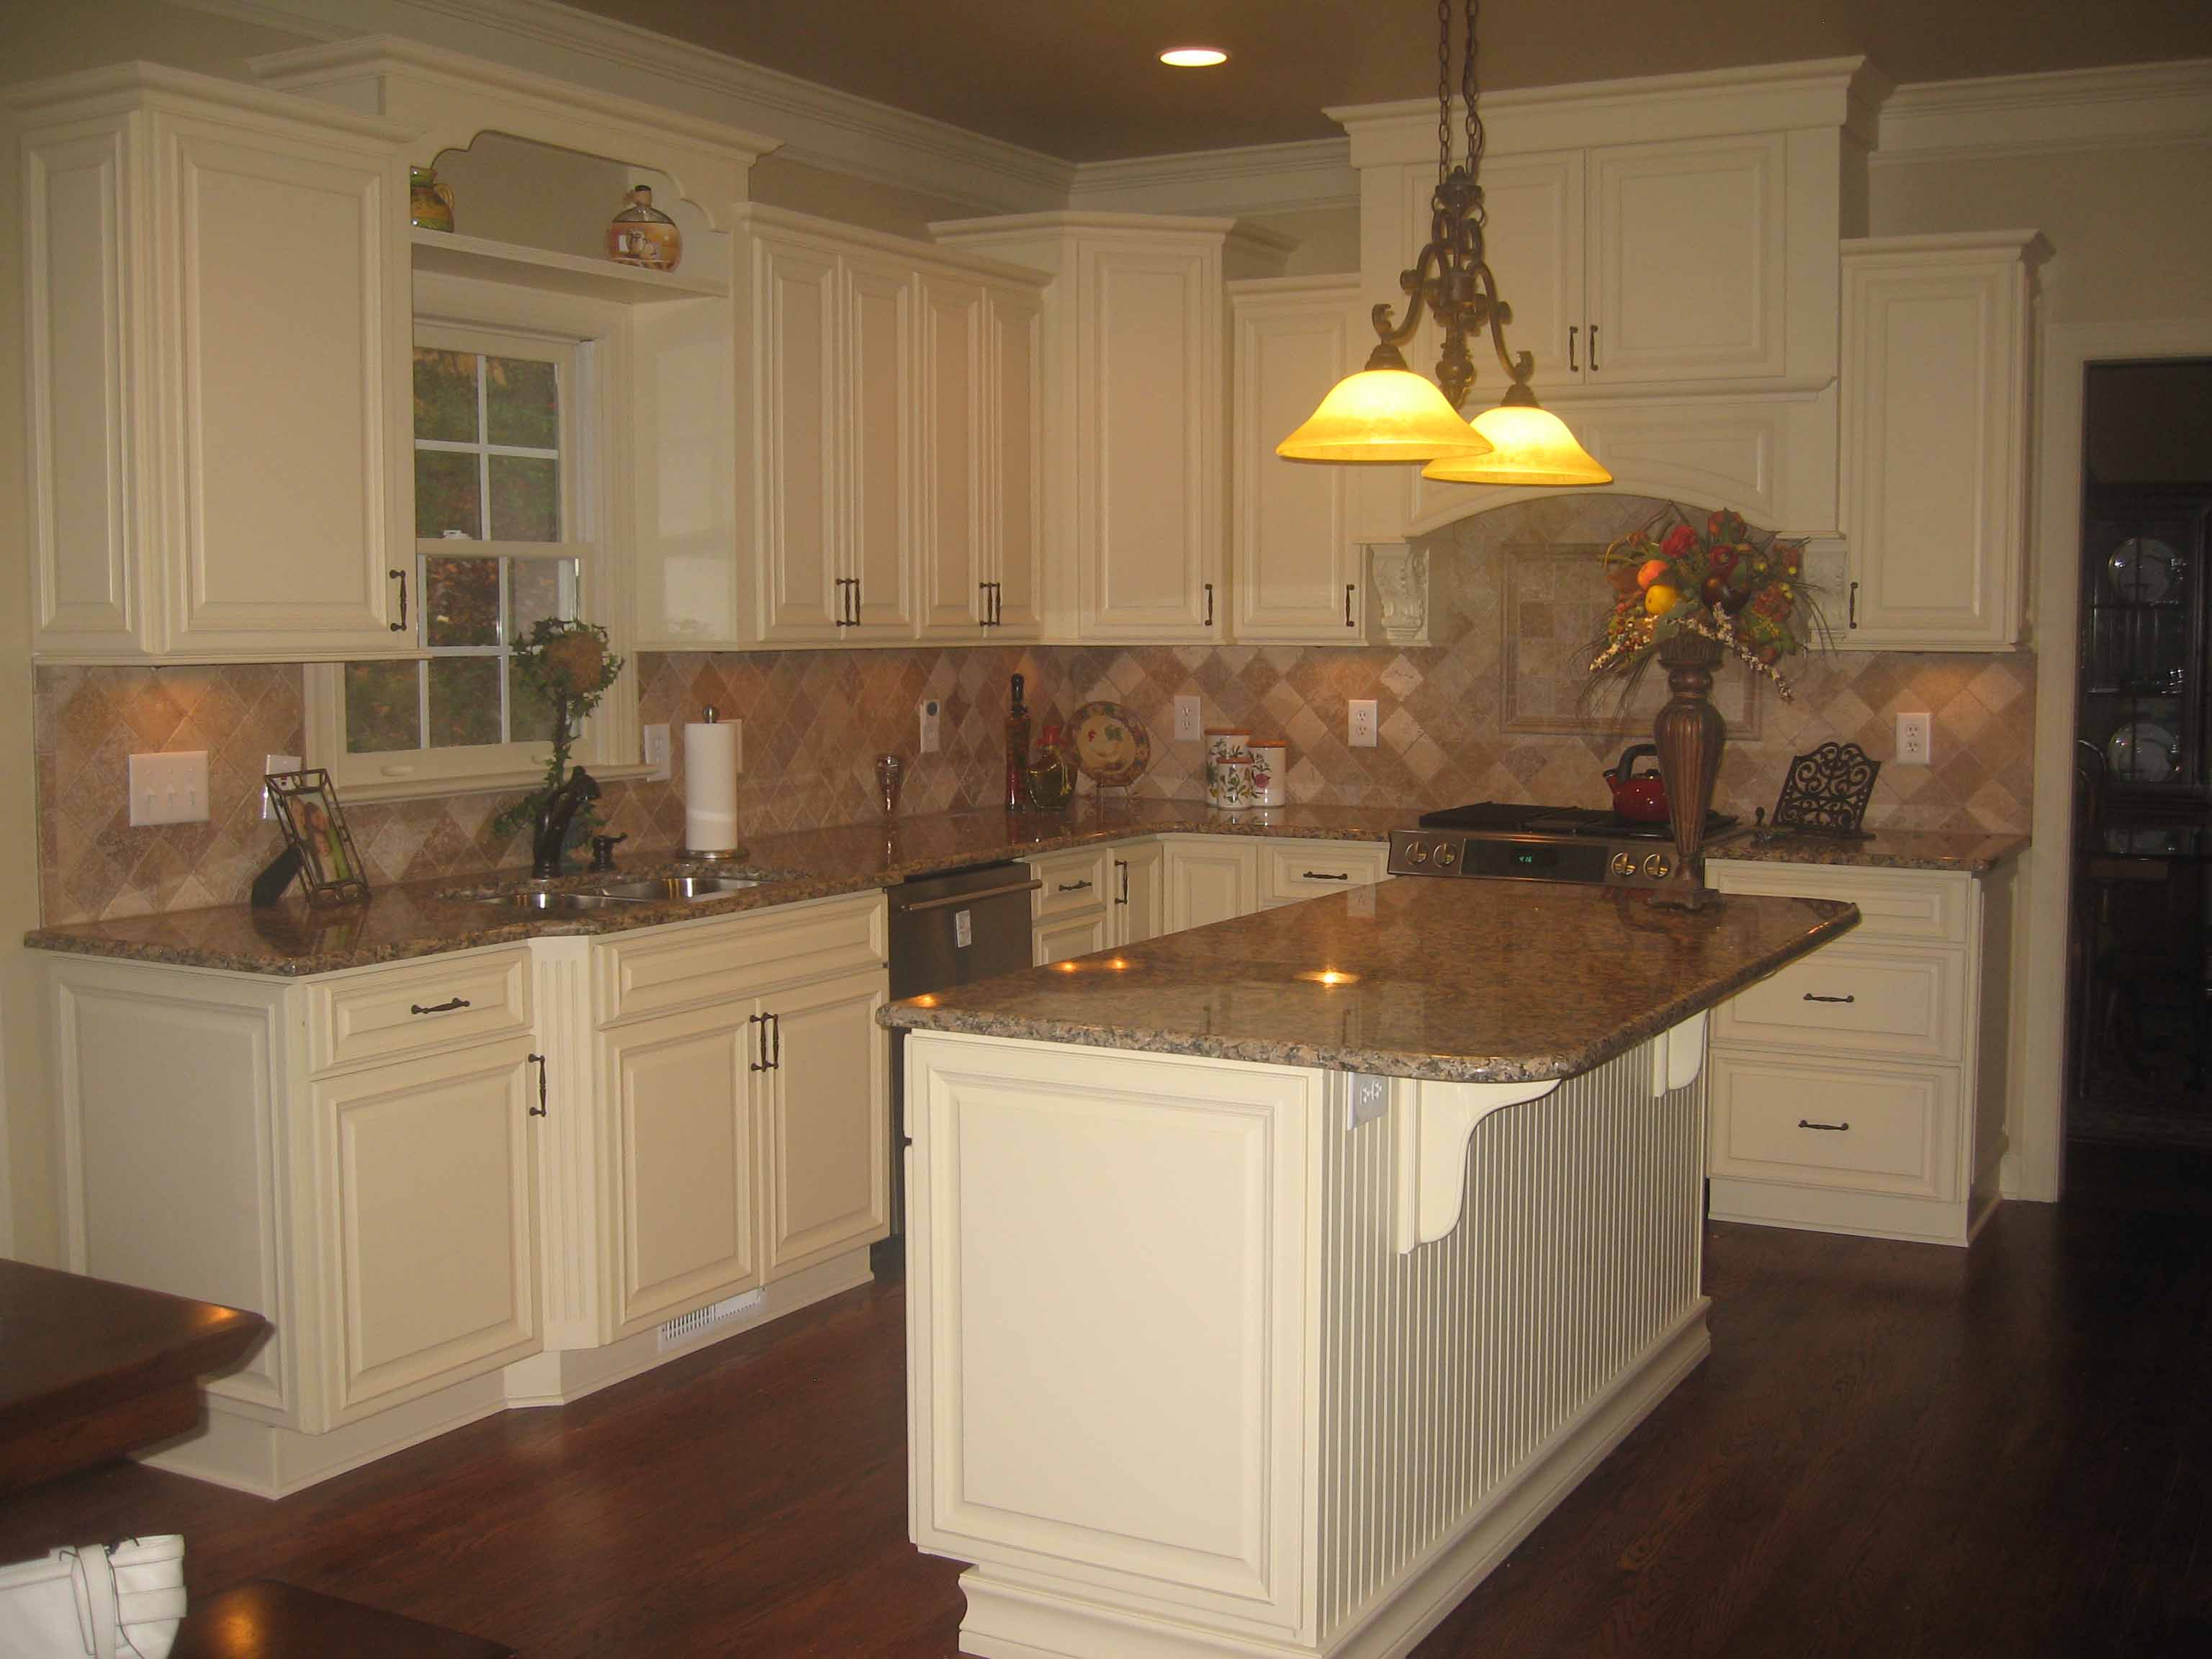 onlinecabinetsdirect kitchen cabinets wholesale Attaberry 4 White Shaker IMG copy